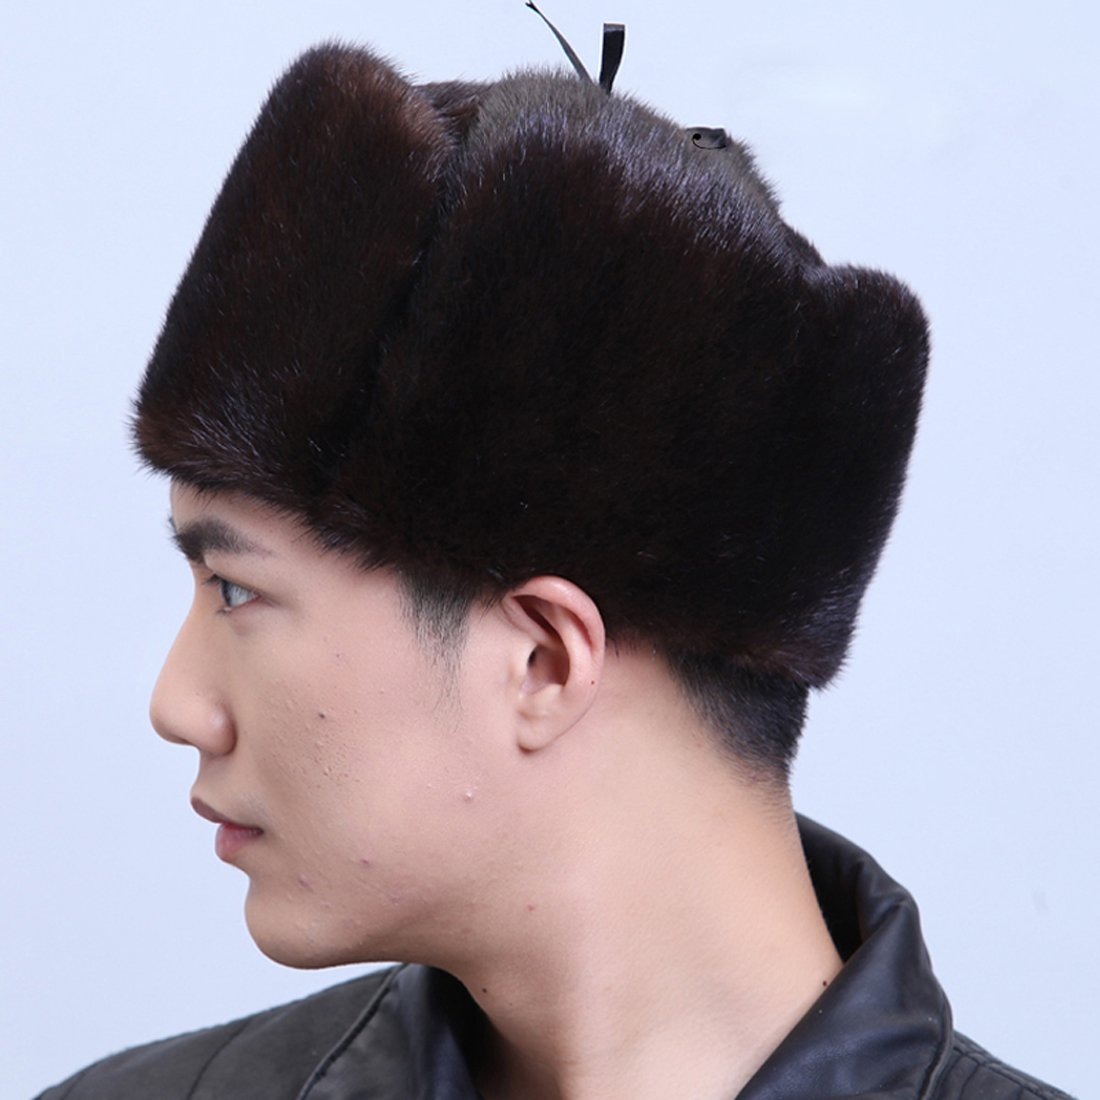 URSFUR Mink Full Fur Russian Hat (One Size, Brown) by URSFUR (Image #2)